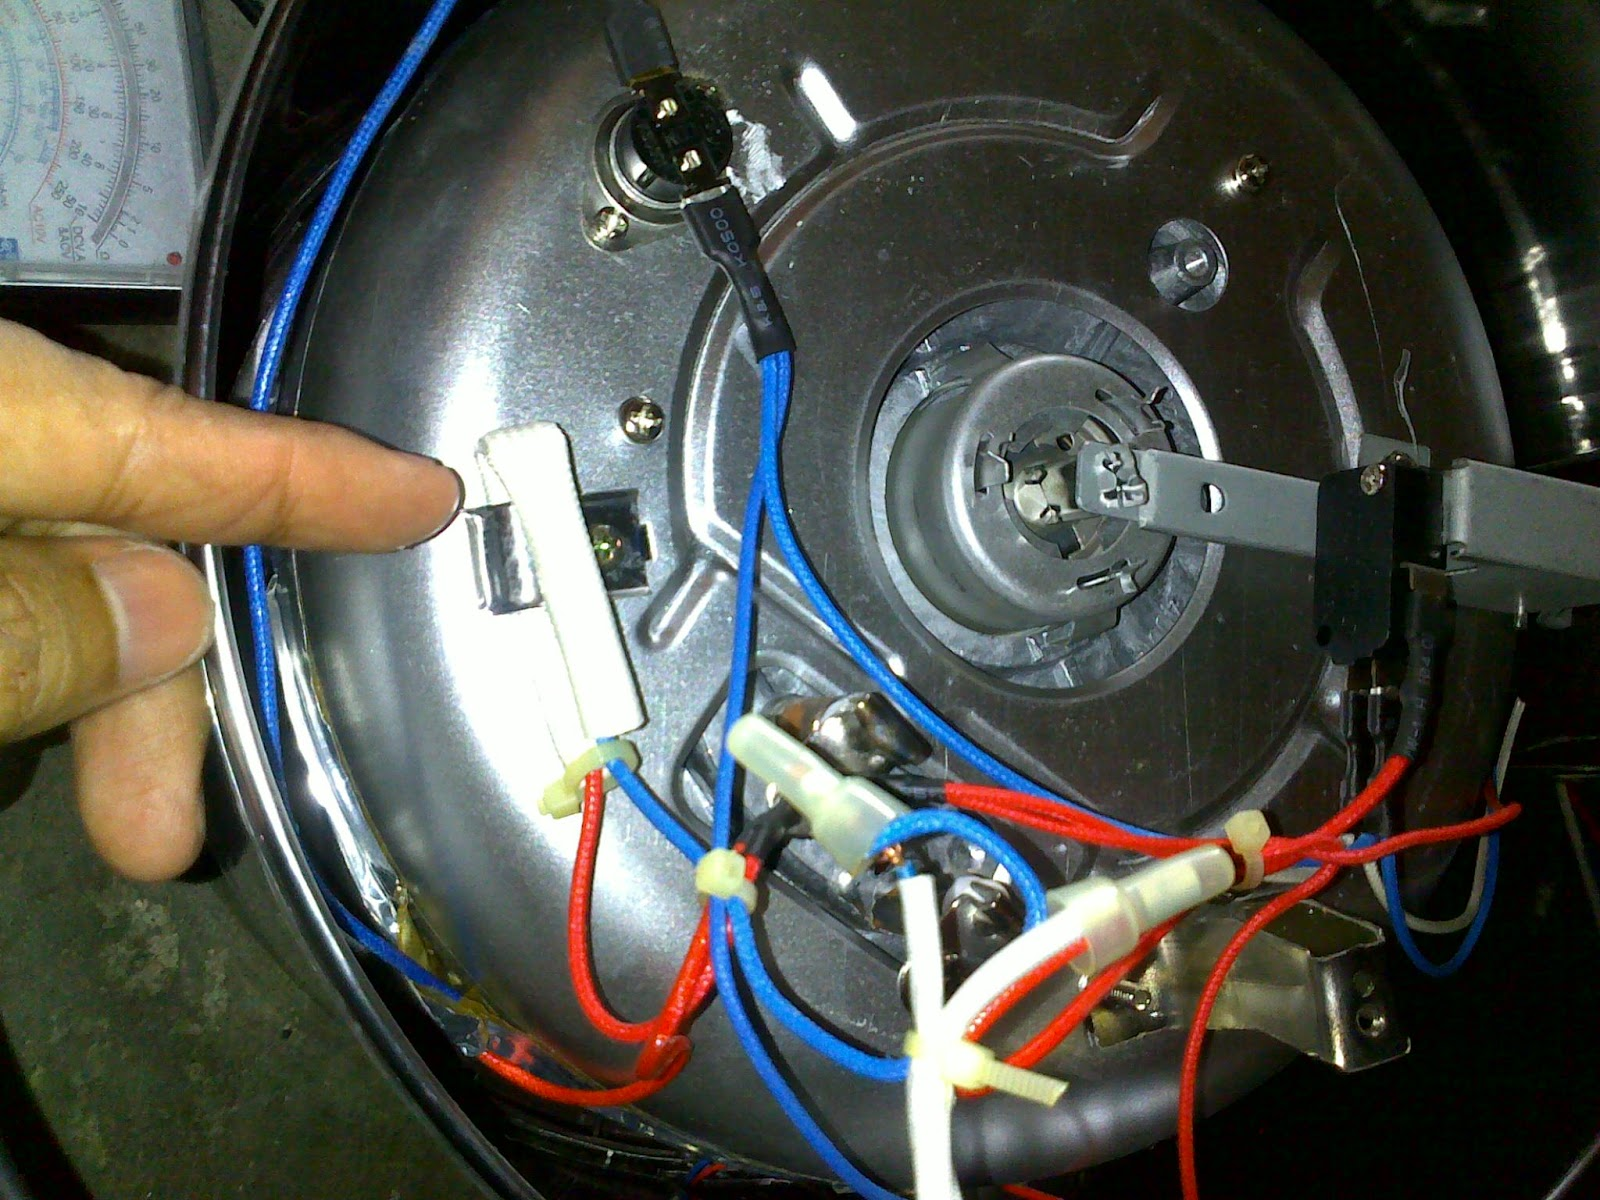 Electrical Wiring Diagram Of Rice Cooker 1950 Ford Dash Cara Memperbaiki Magic Com Mati Total Semua Merk